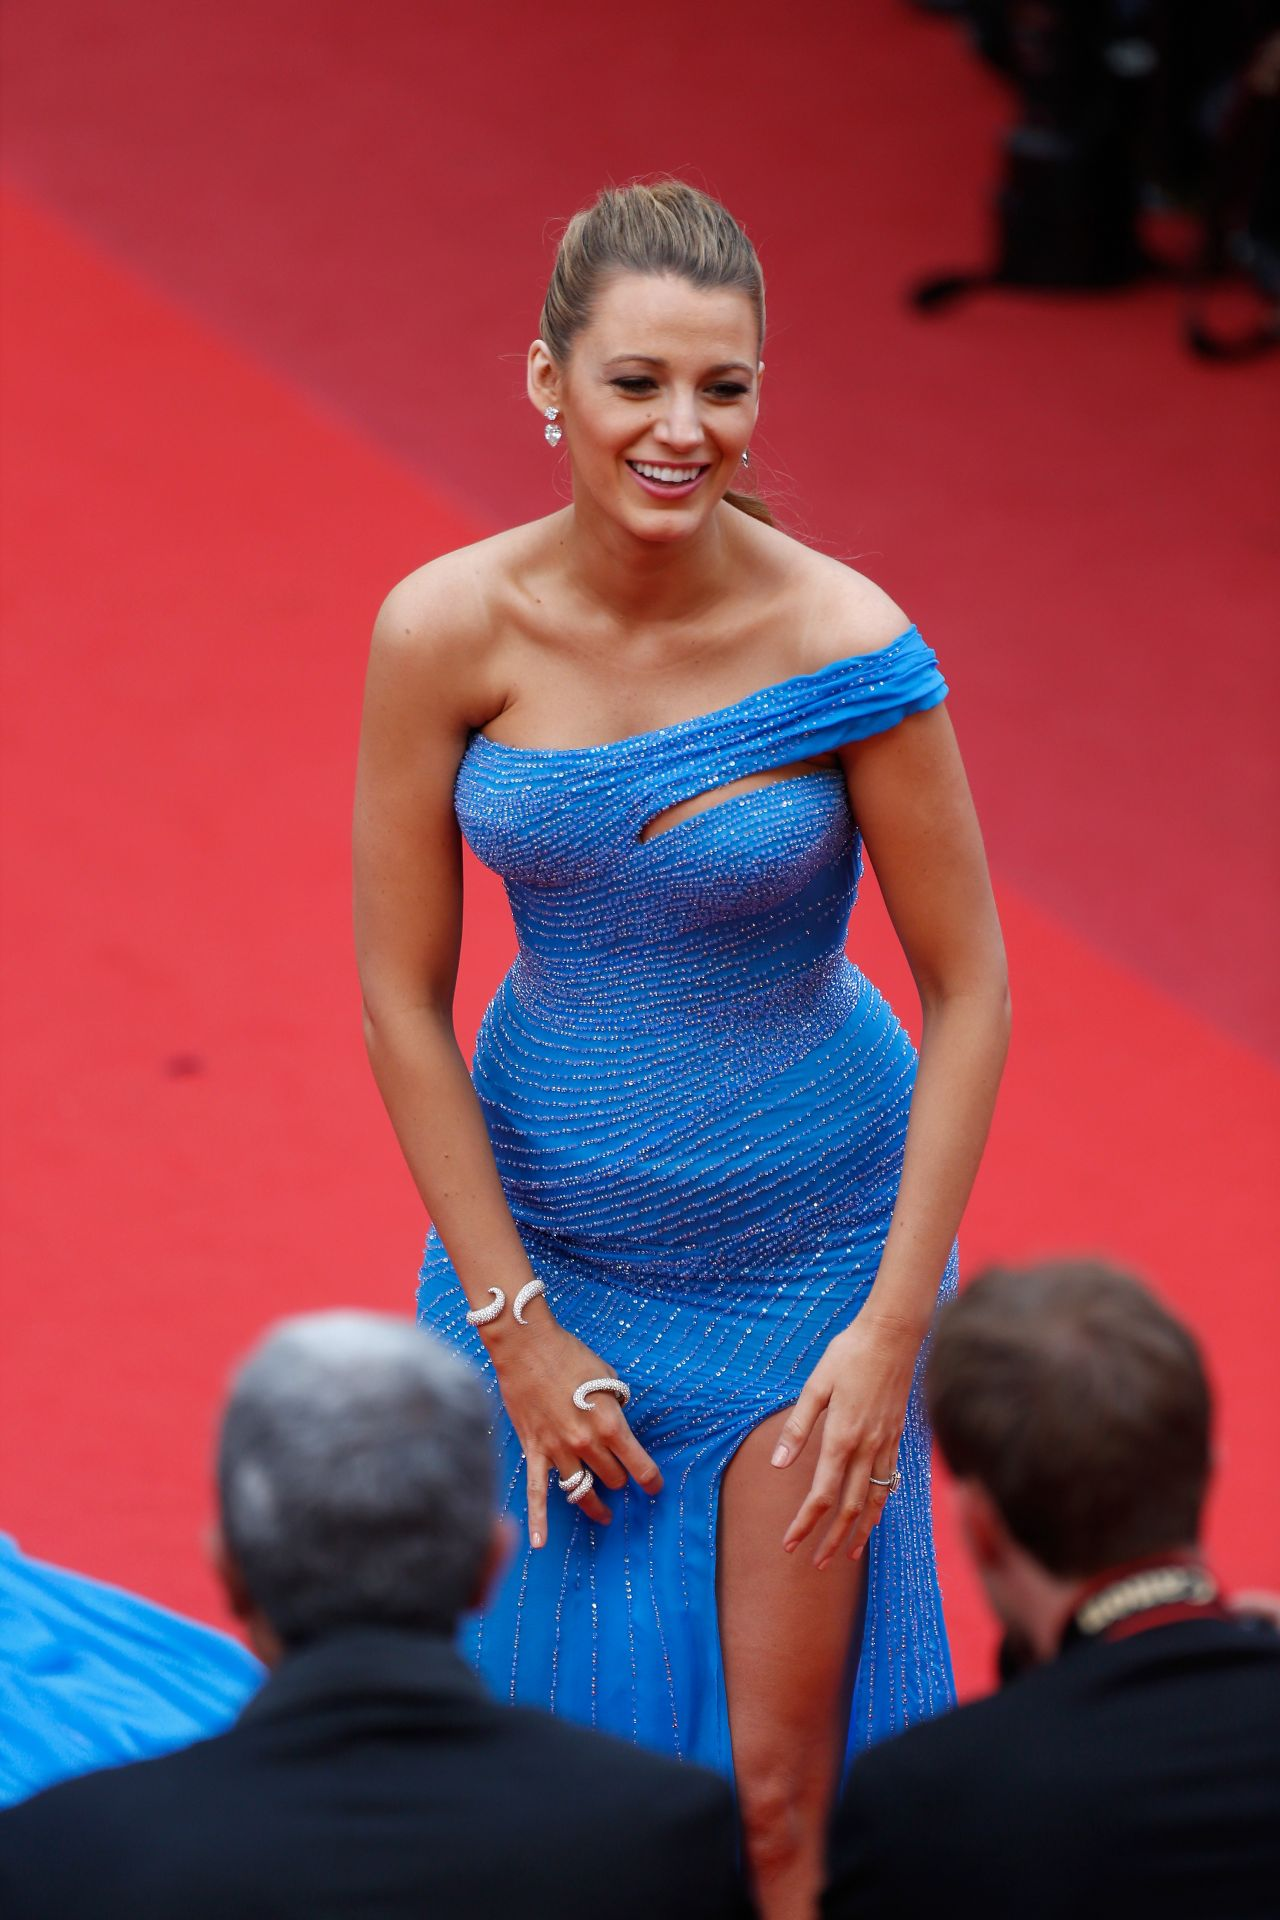 blake-lively-the-bfg-premiere-cannes-film-festival-in-cannes-5-14-2016-7